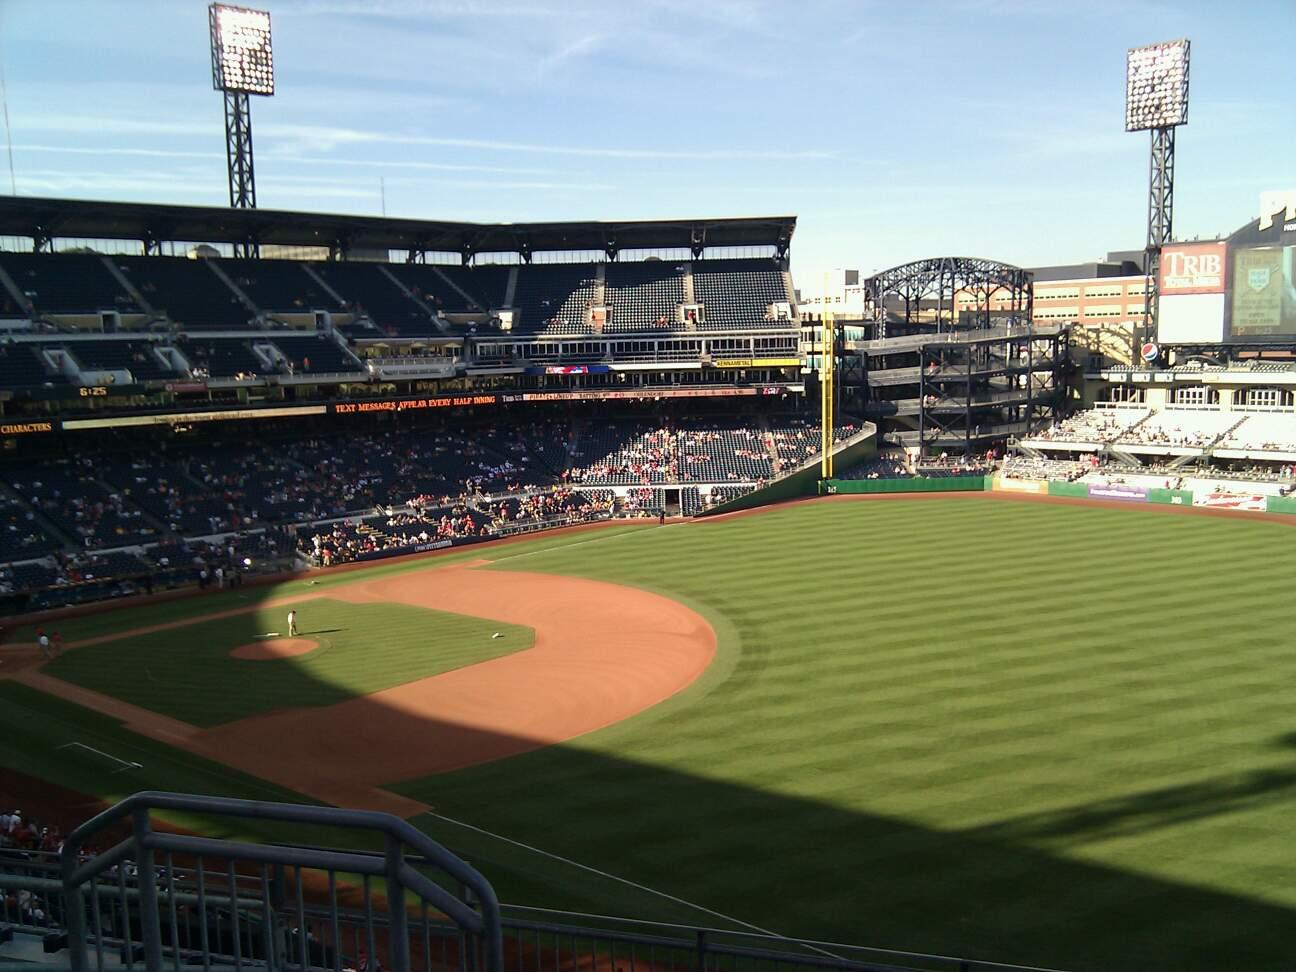 PNC Park Section 203 Row g Seat 10